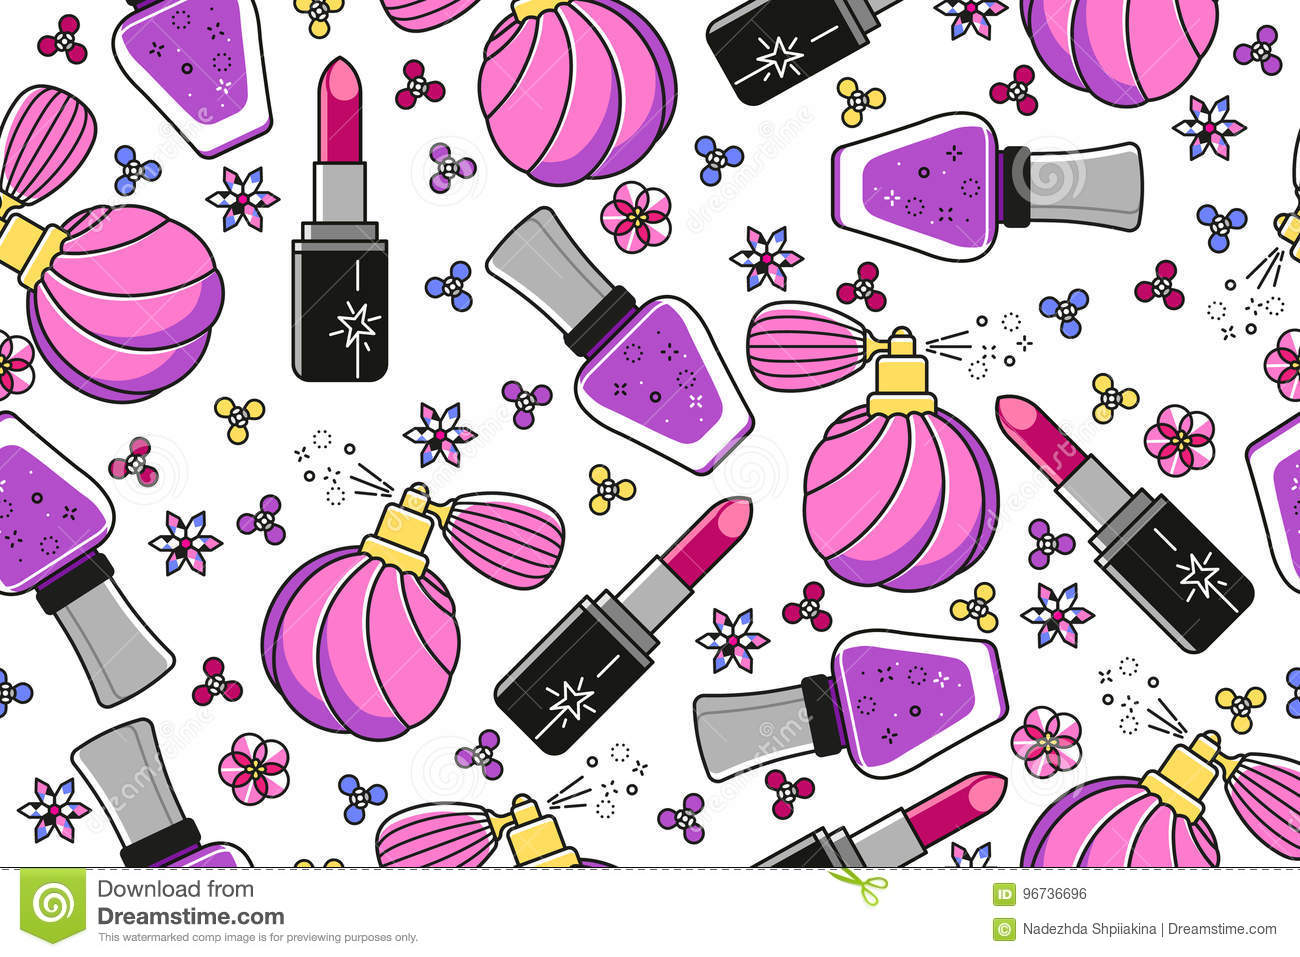 Fashion pattern can be used for wallpaper, pattern fills, web page background, surface textures, wrapping paper design